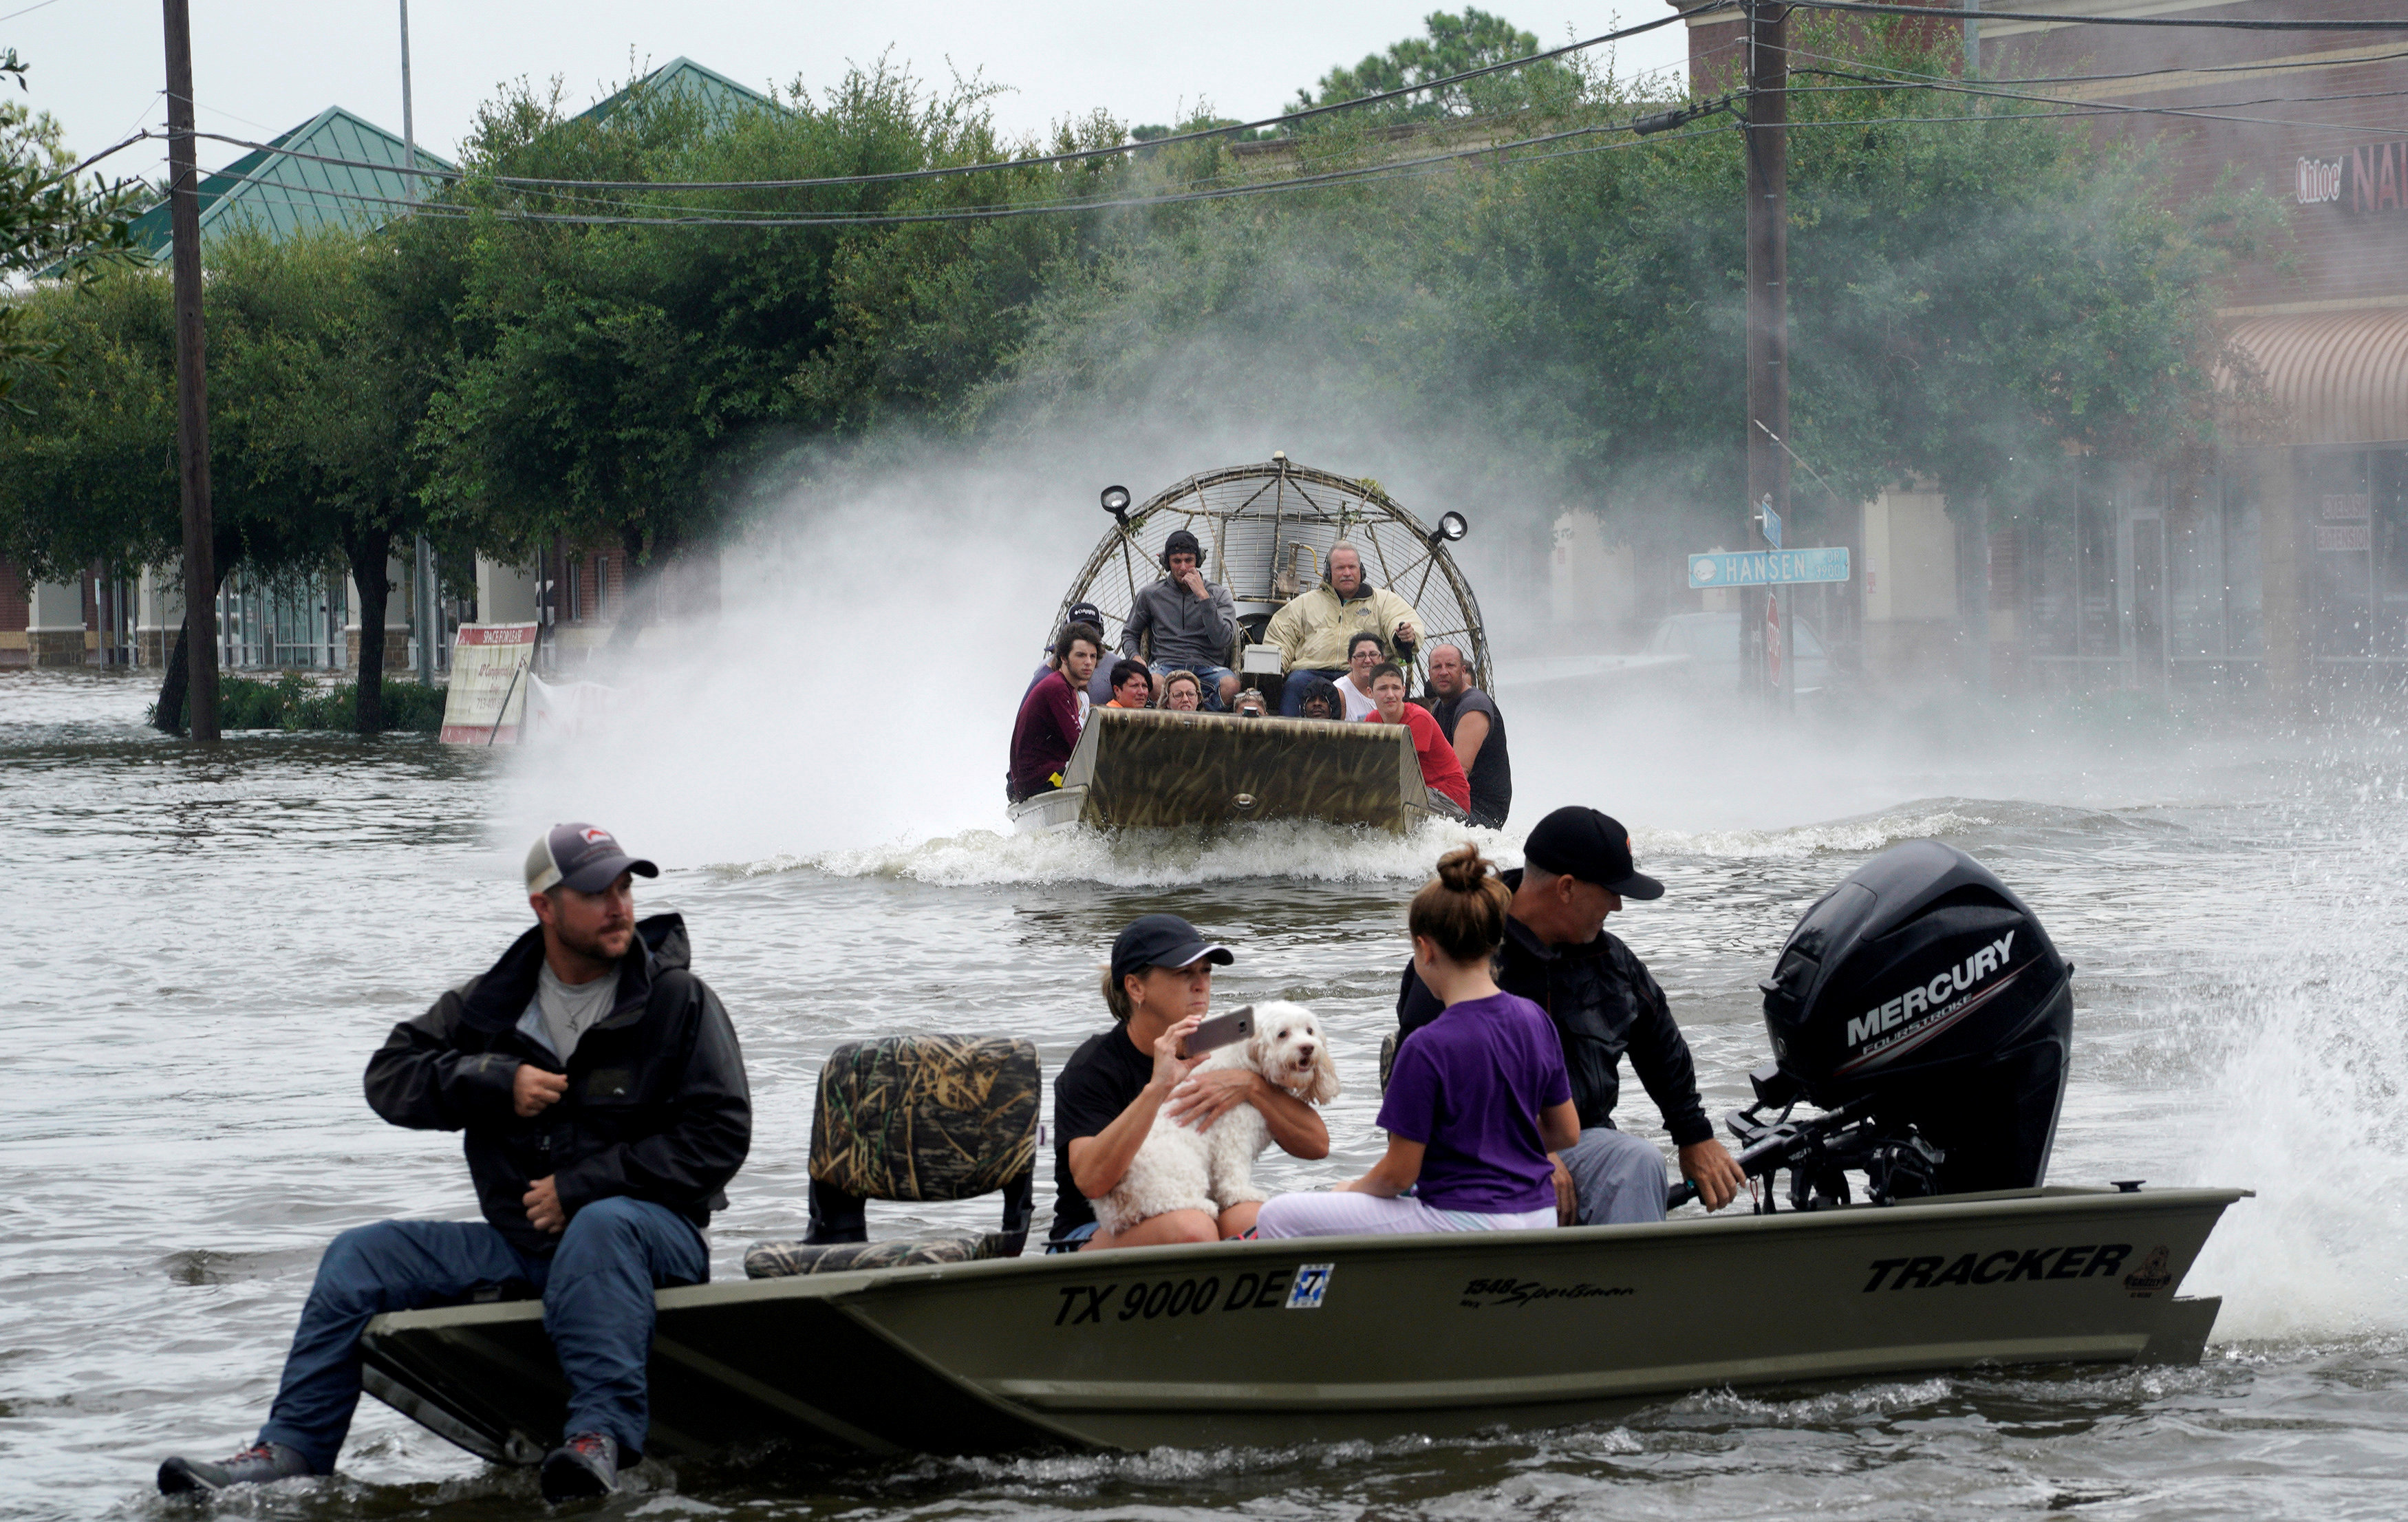 People are rescued from flood waters from Hurricane Harvey on an air boat in Dickinson, Texas on Aug. 27, 2017. (REUTERS/Rick Wilking)